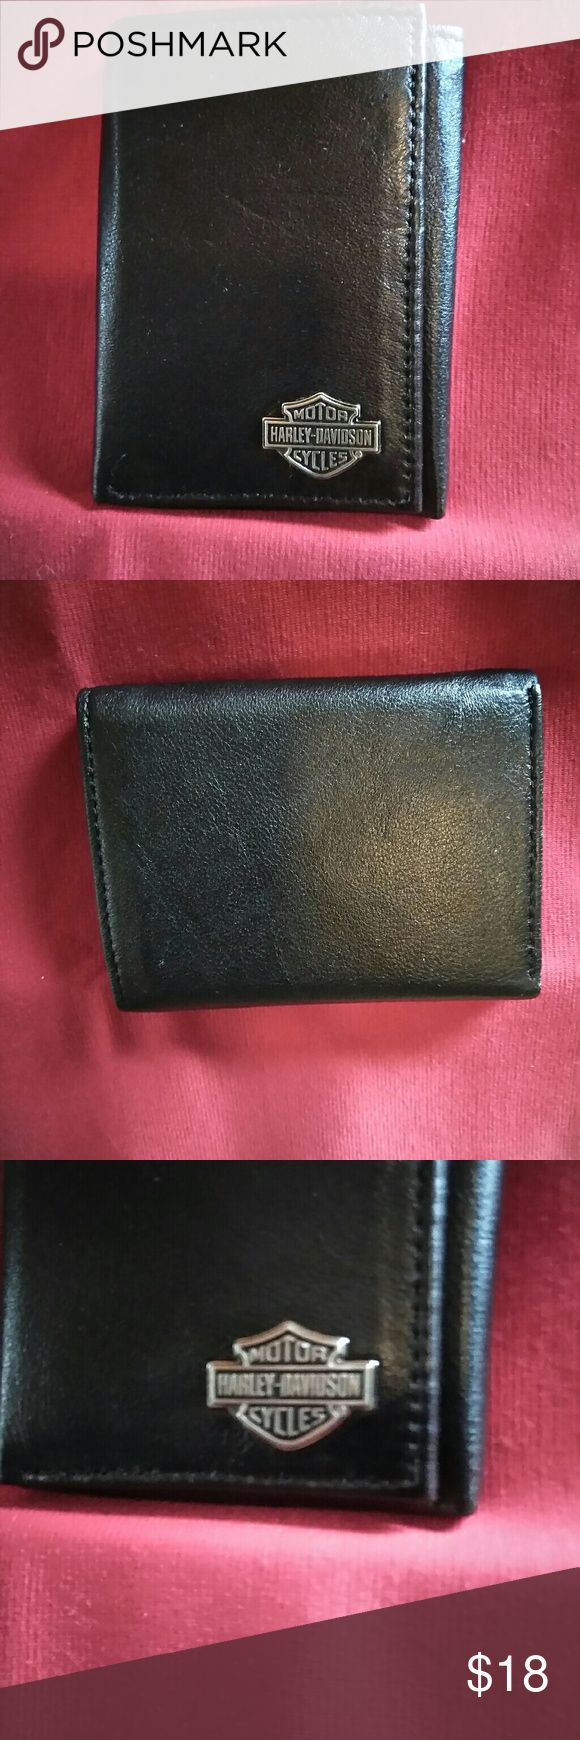 """Harley Davidson mens tri fold black leather wallet Harley Davidson mens tri fold black lambskin leather wallet. Lambskin is super soft leather. Never used. Still has HD card inside. Measures  3 1/2"""" x 4 1/2"""" close and 9 1/2""""x 4 1/2"""" when opened. Inside there's a clean I'd compartment 6 credit card slots and a divided bill slot. Harley-Davidson Bags Wallets"""